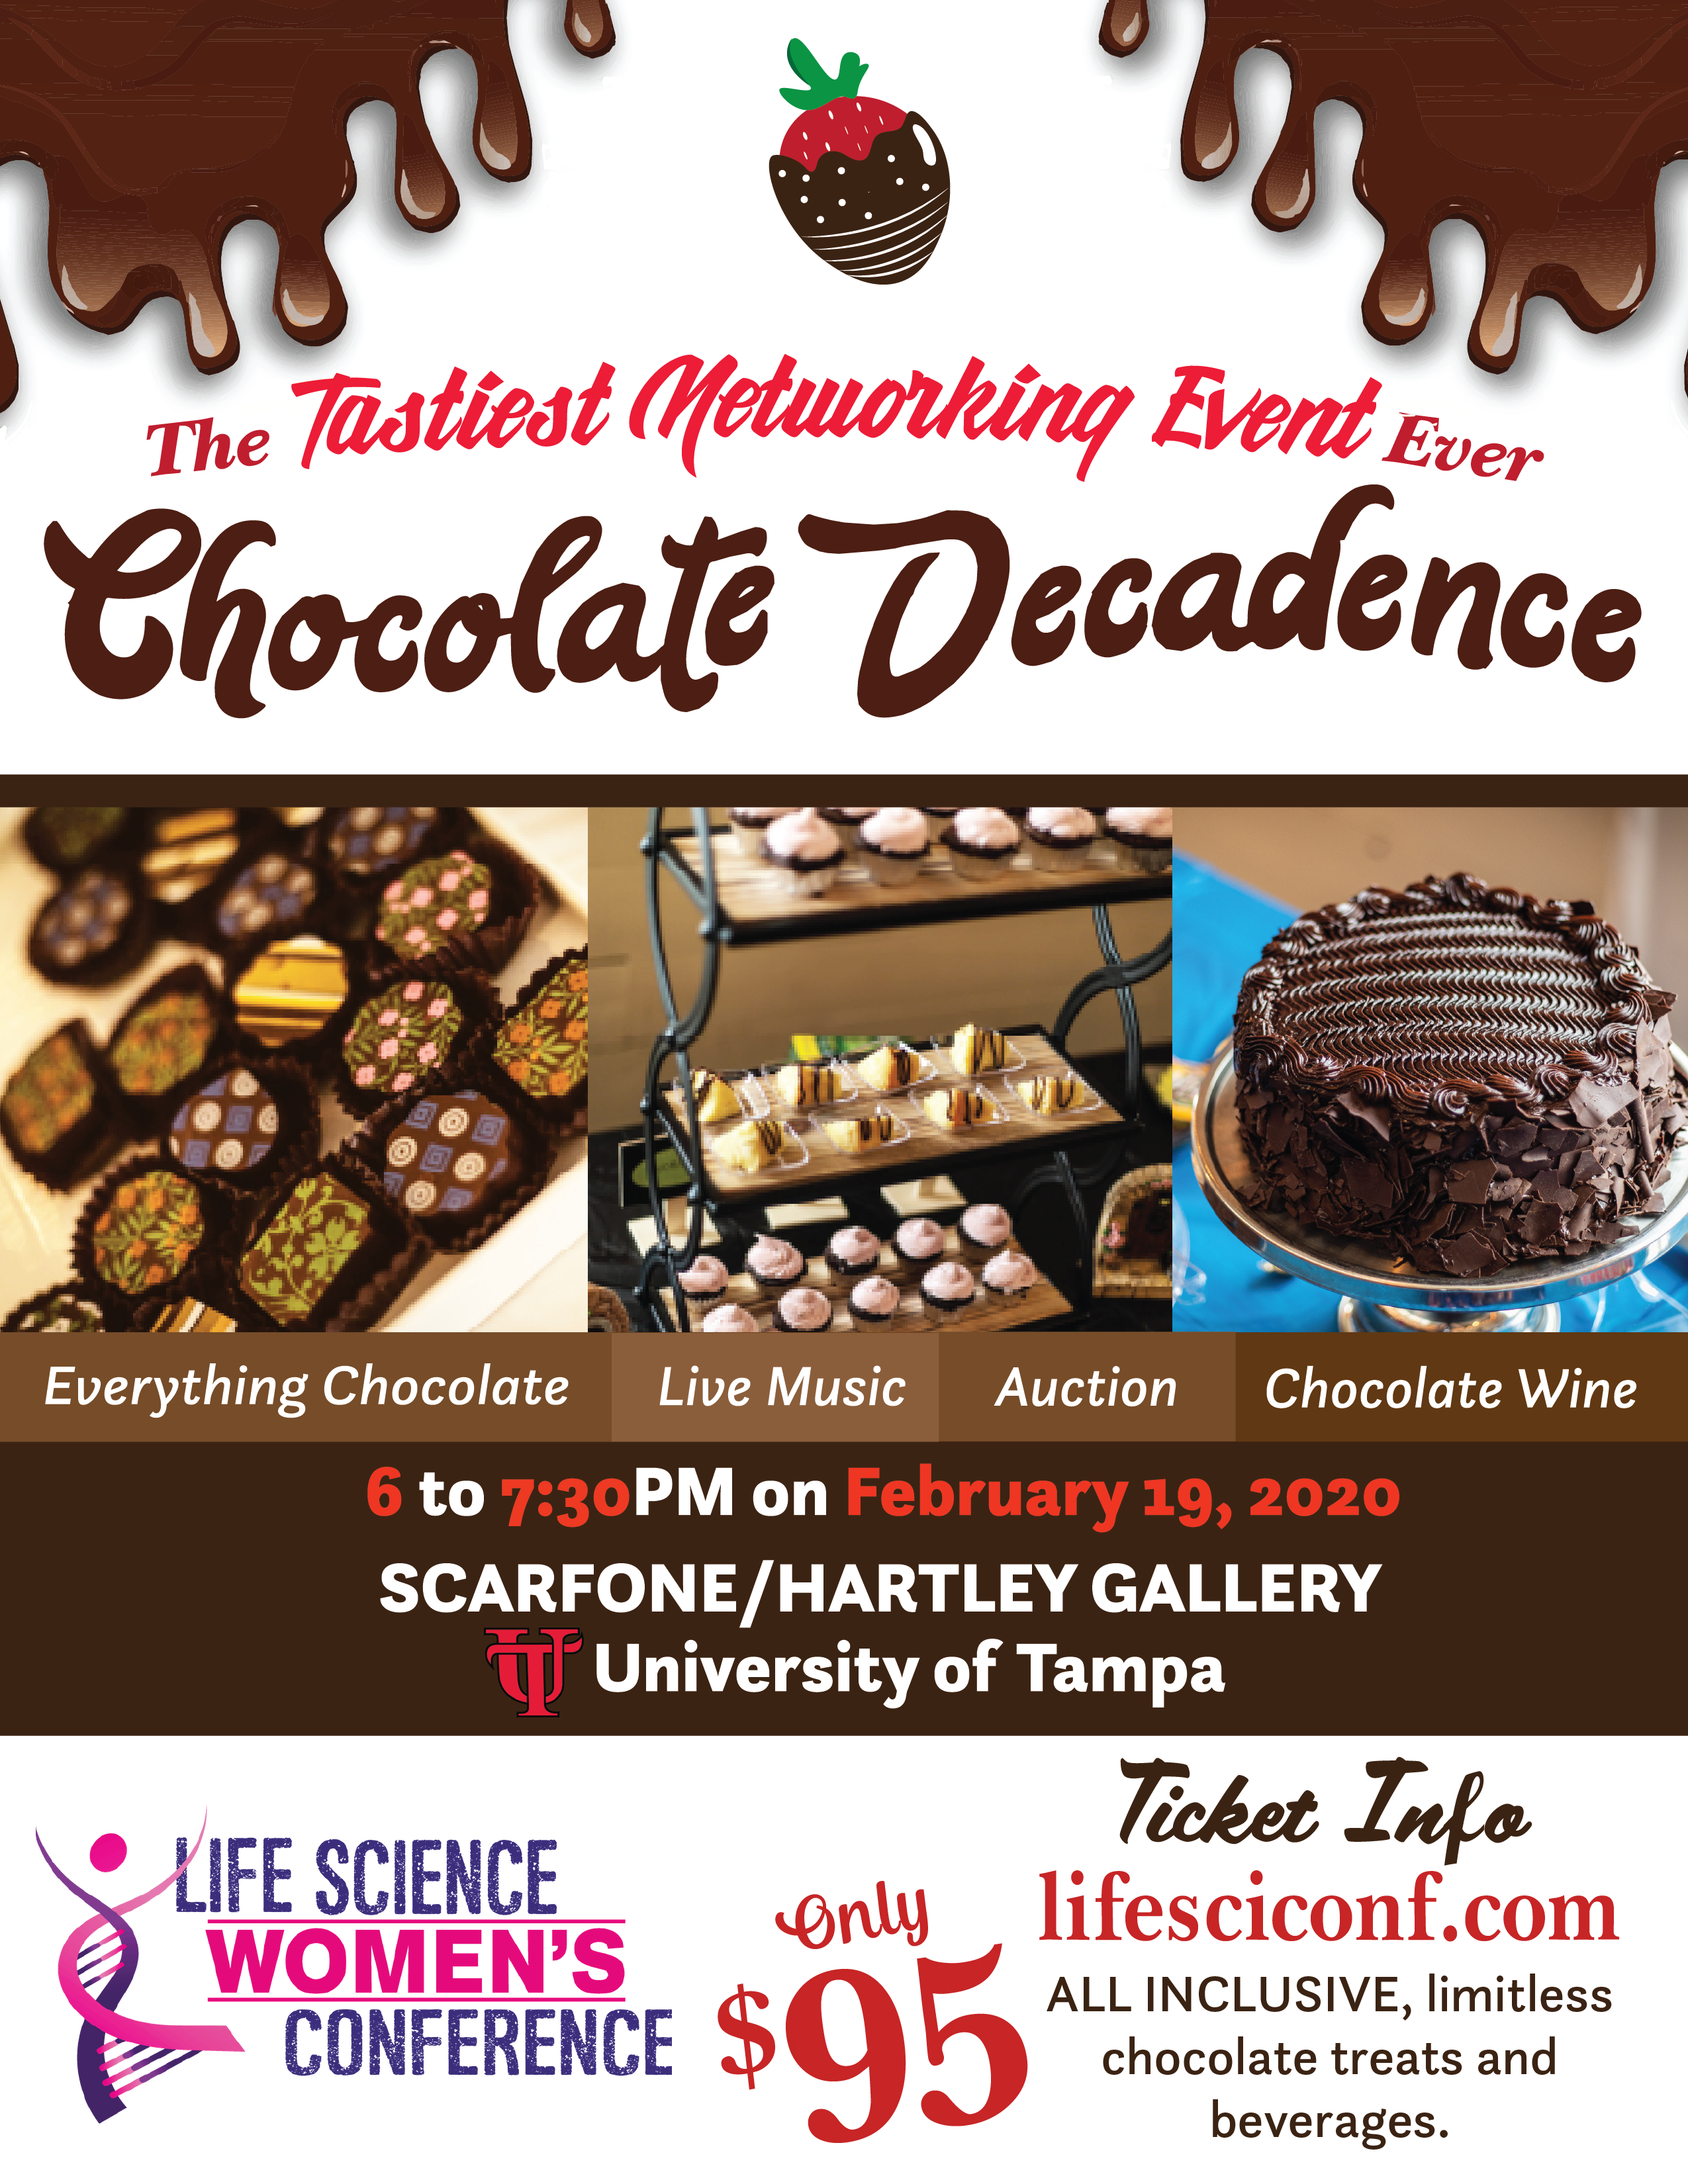 The 2020 Chocolate Decadence Networking event will be held on February 19th from 6 to 730 pm at the University of Tampa Scarfone-Hartley Gallery.